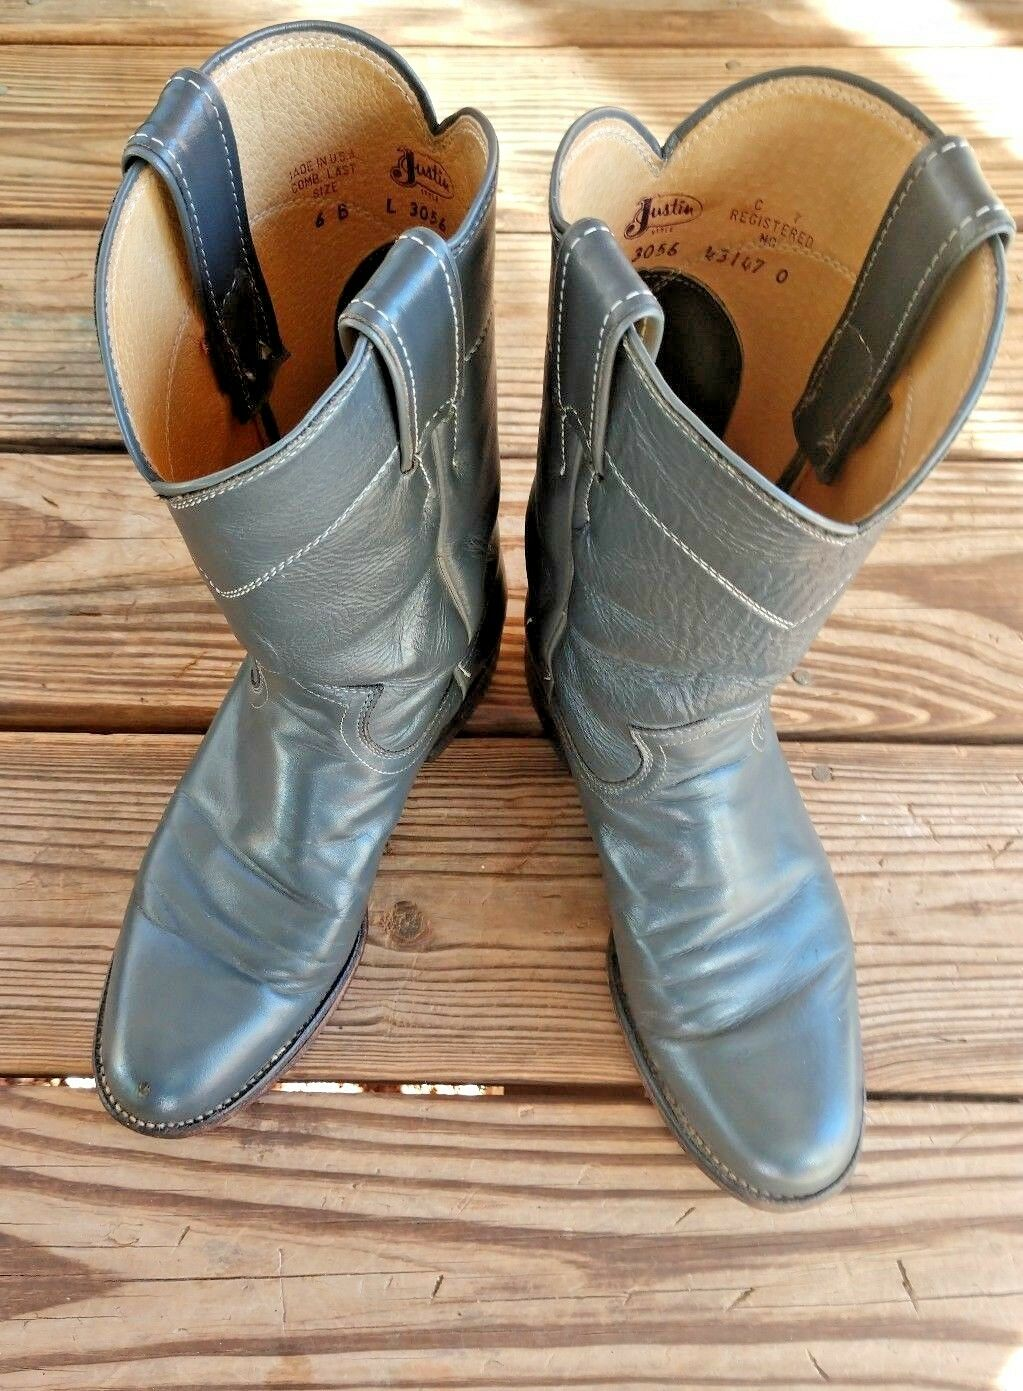 Justin Size 6 B Roper Womens Cowboy Boots L3056 Dark Gray Leather USA MADE